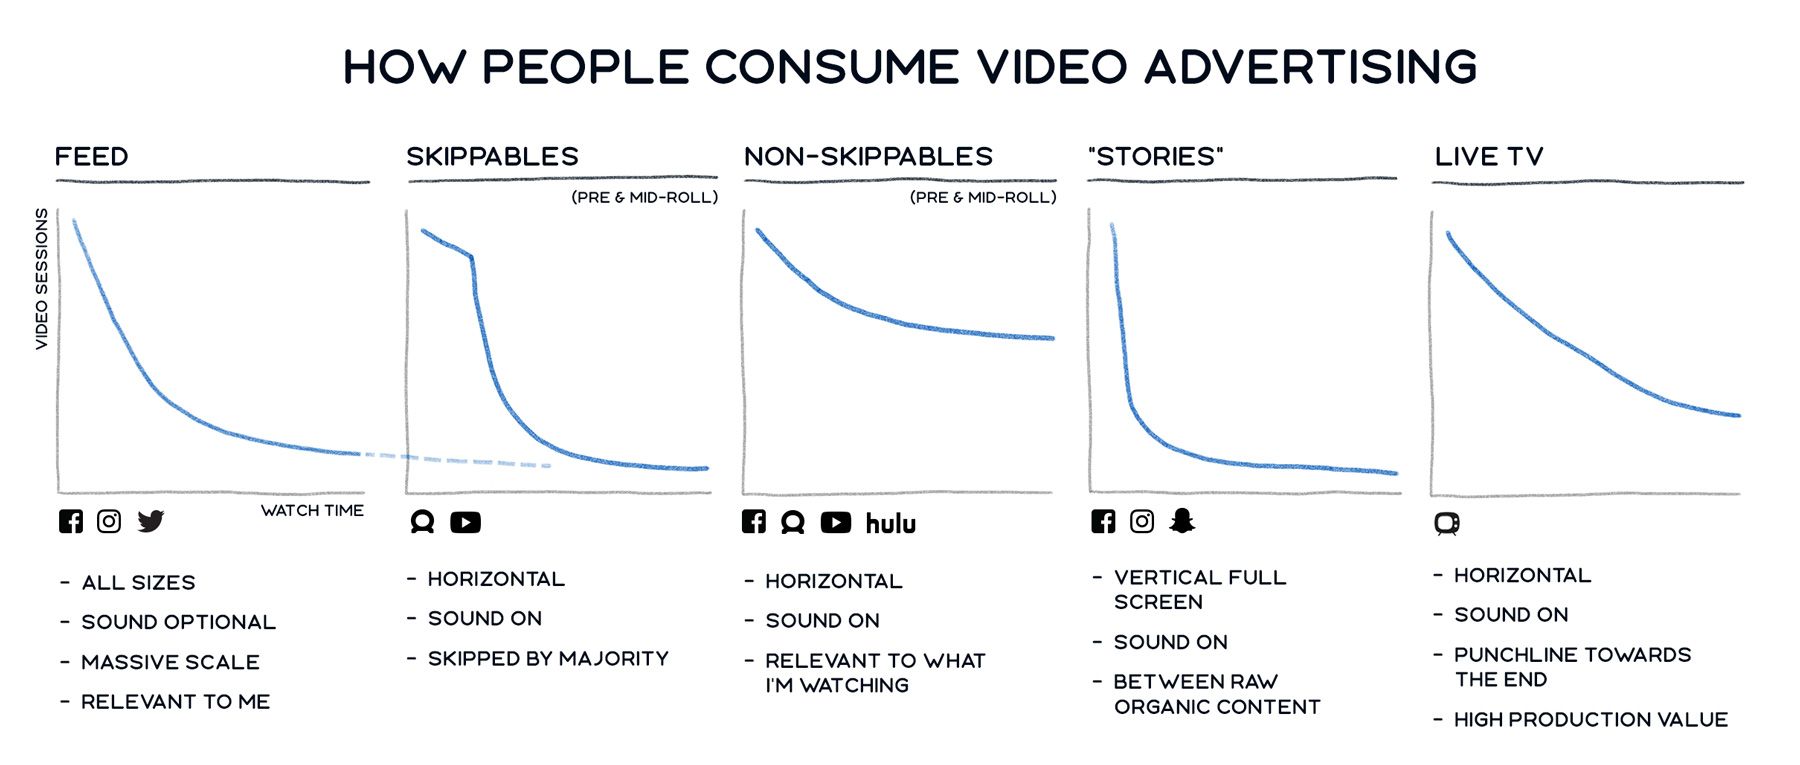 How People Consume Video Advertising